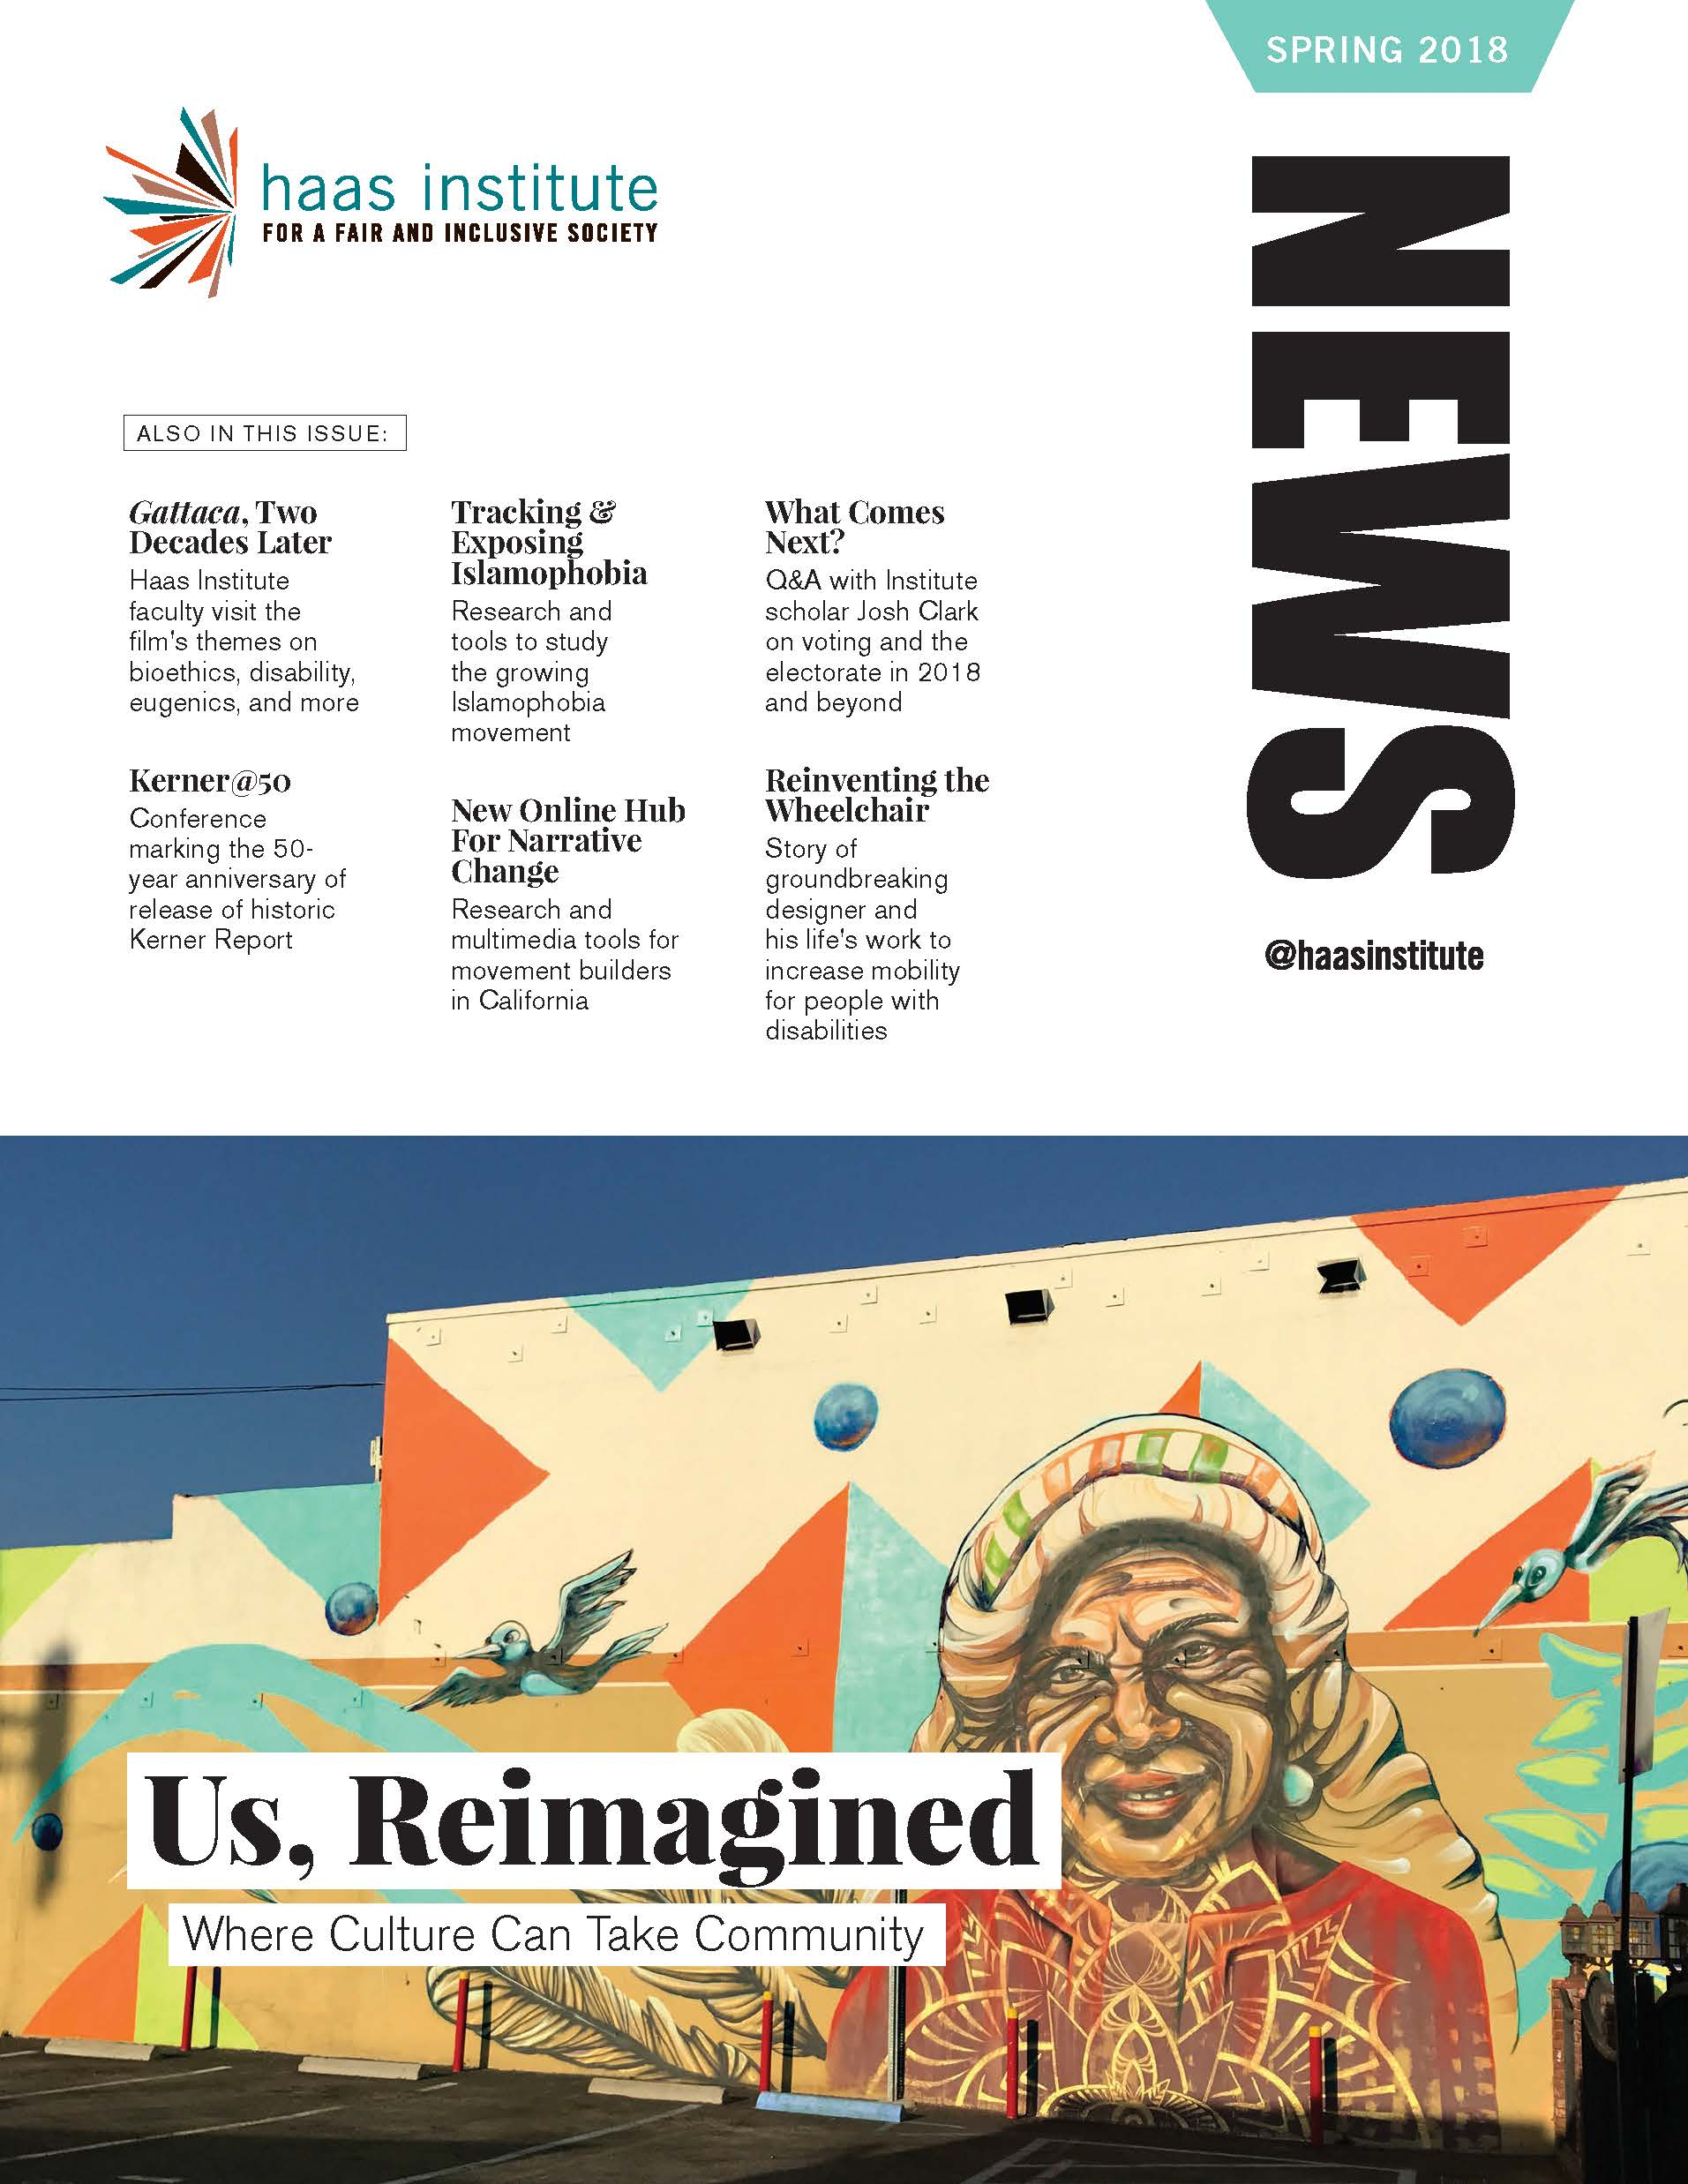 Cover of the Spring 2018 edition of the Haas Institute news magazine